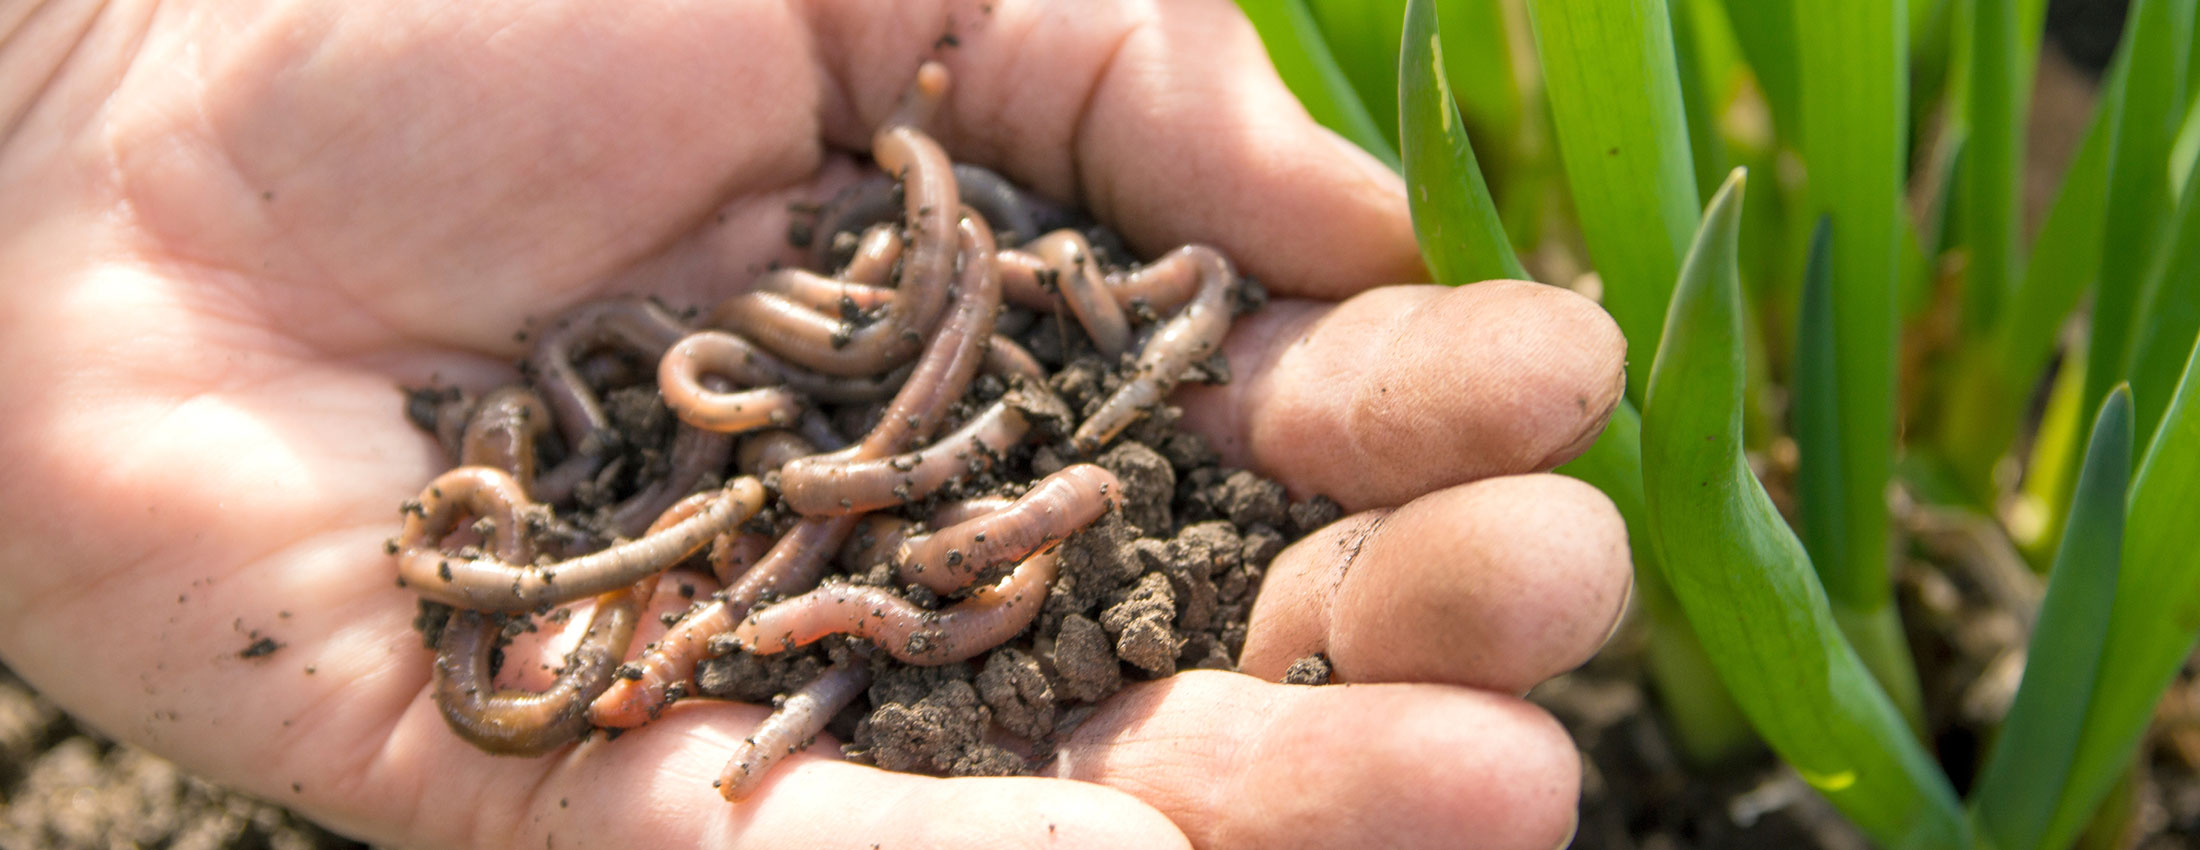 Bringing Back The Earthworms – Paul's Story